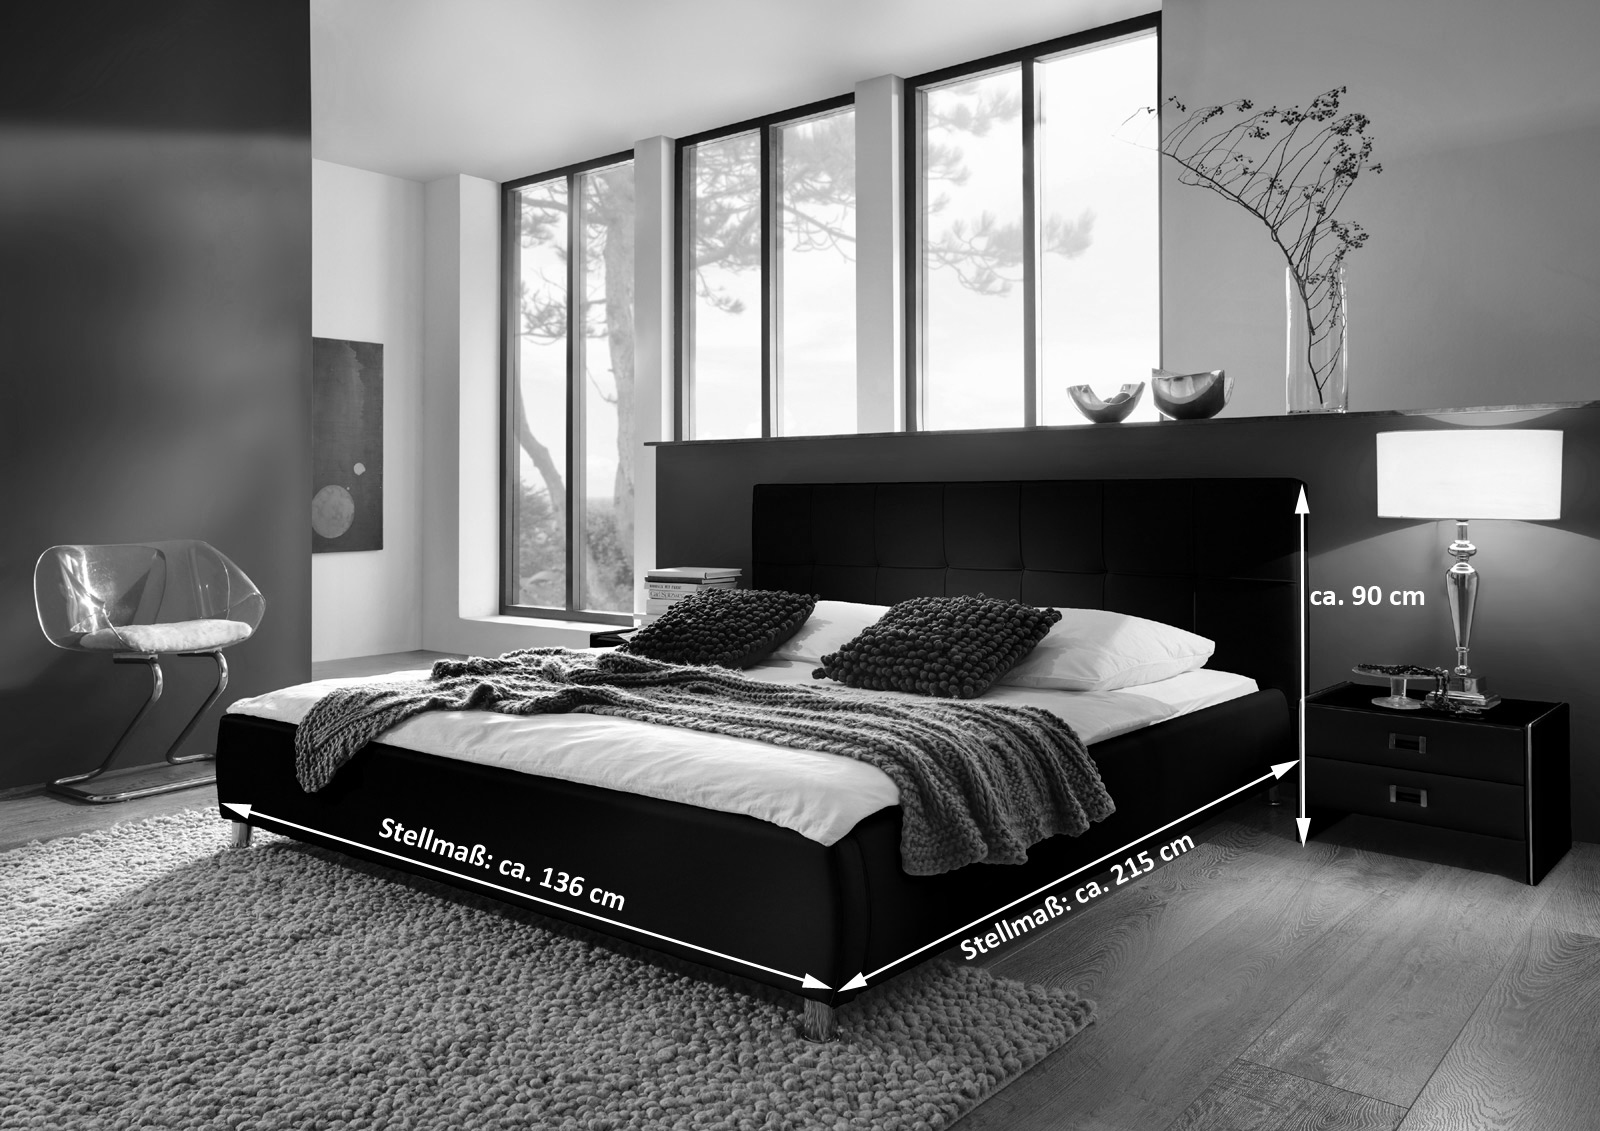 sam polsterbett 120x200 cm schwarz bettgestell g nstig zarah. Black Bedroom Furniture Sets. Home Design Ideas